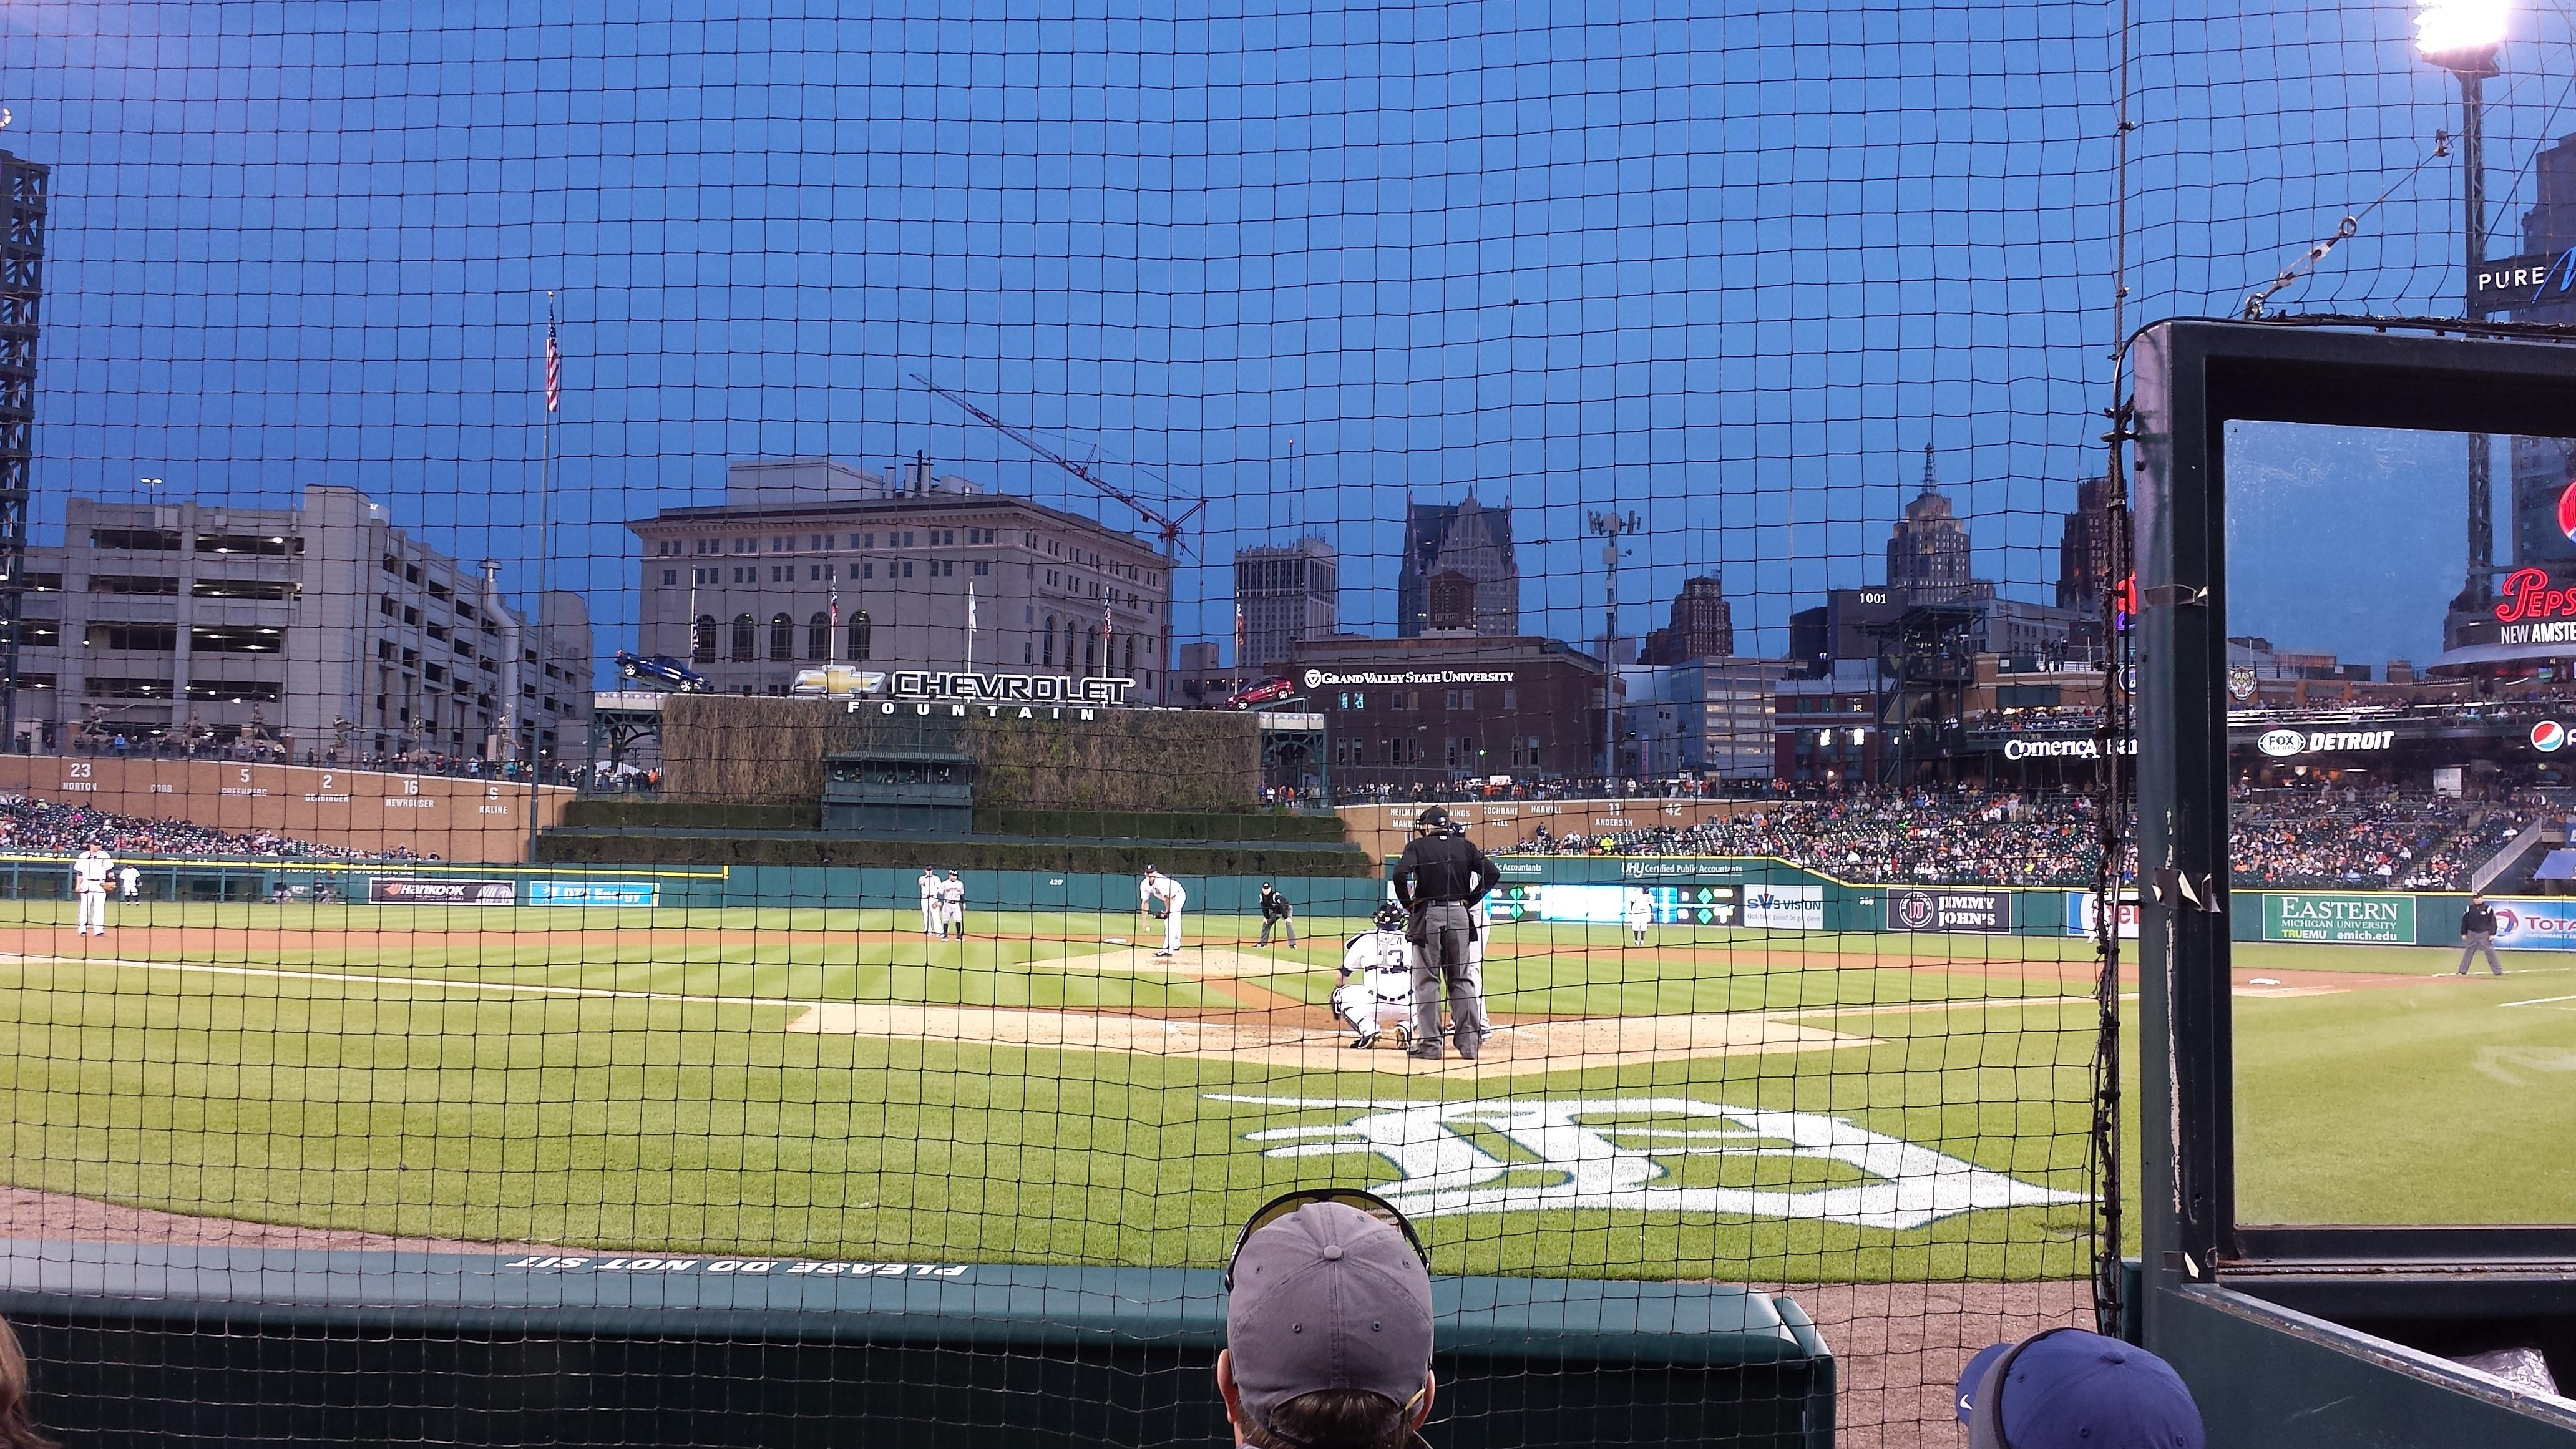 View from Section 128 Row 4 at Comerica Park